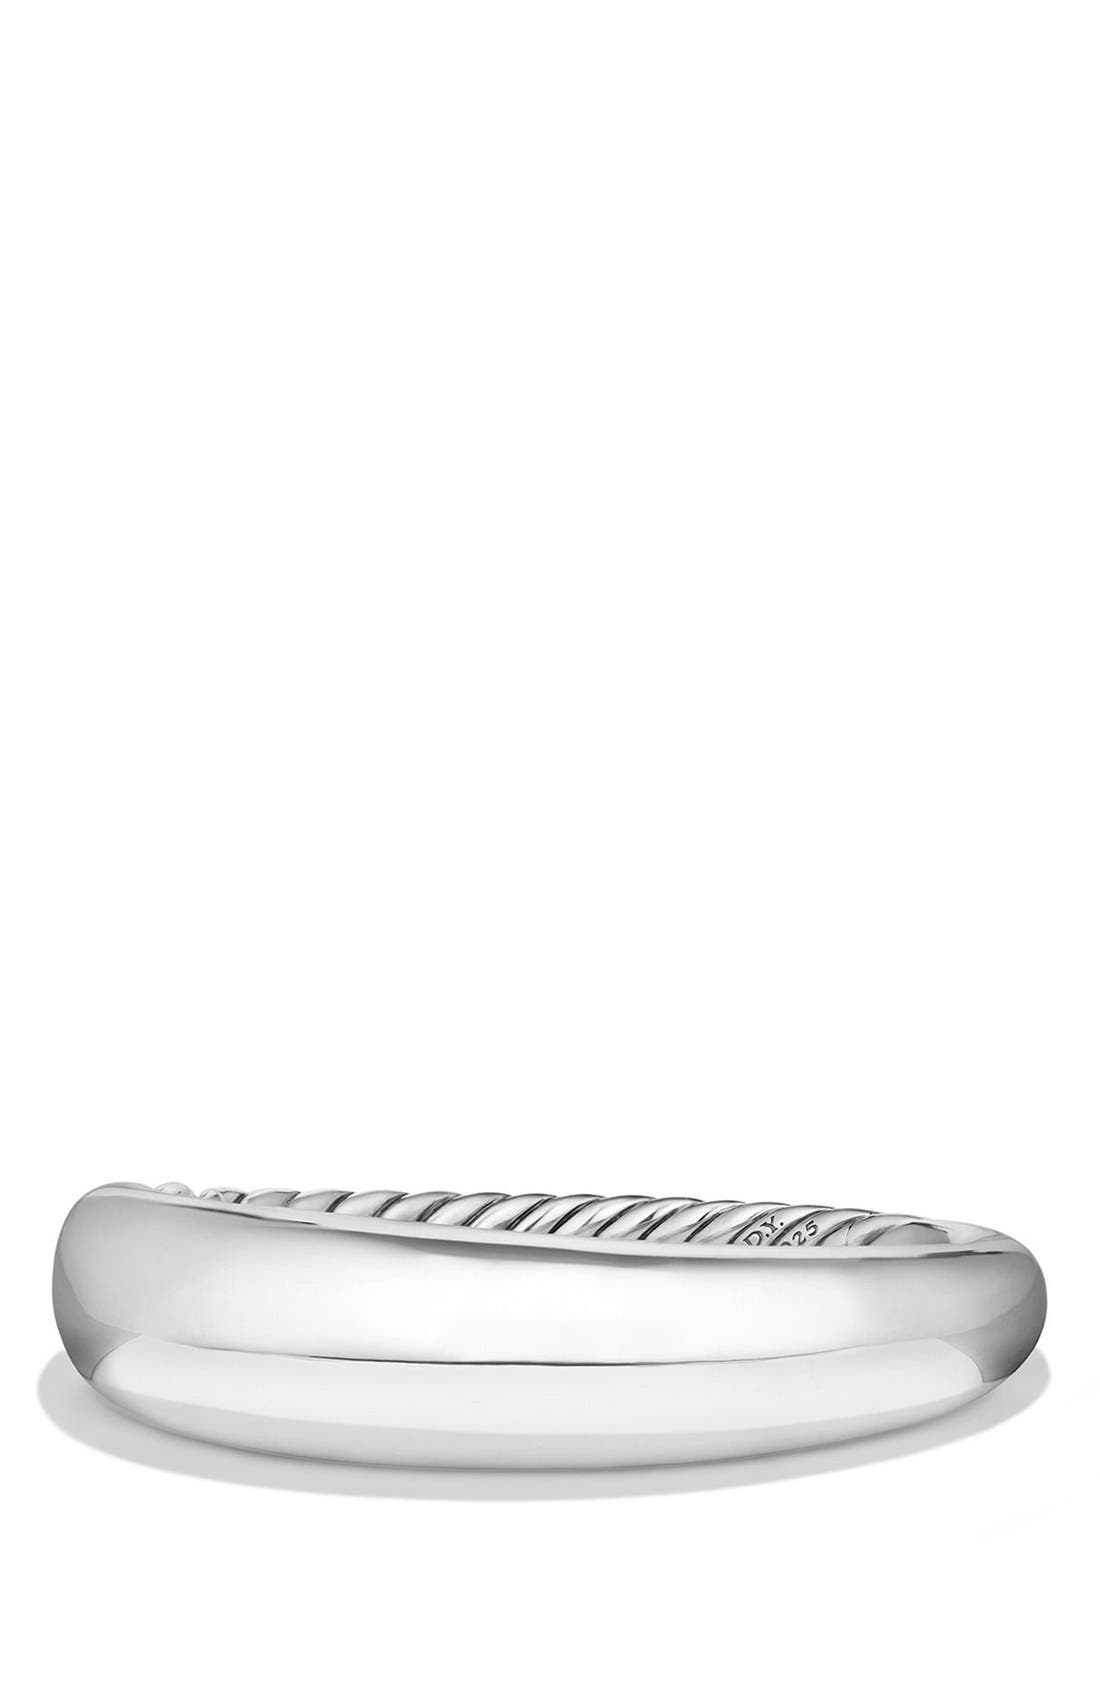 'Pure Form' Large Sterling Silver Bracelet,                         Main,                         color, SILVER